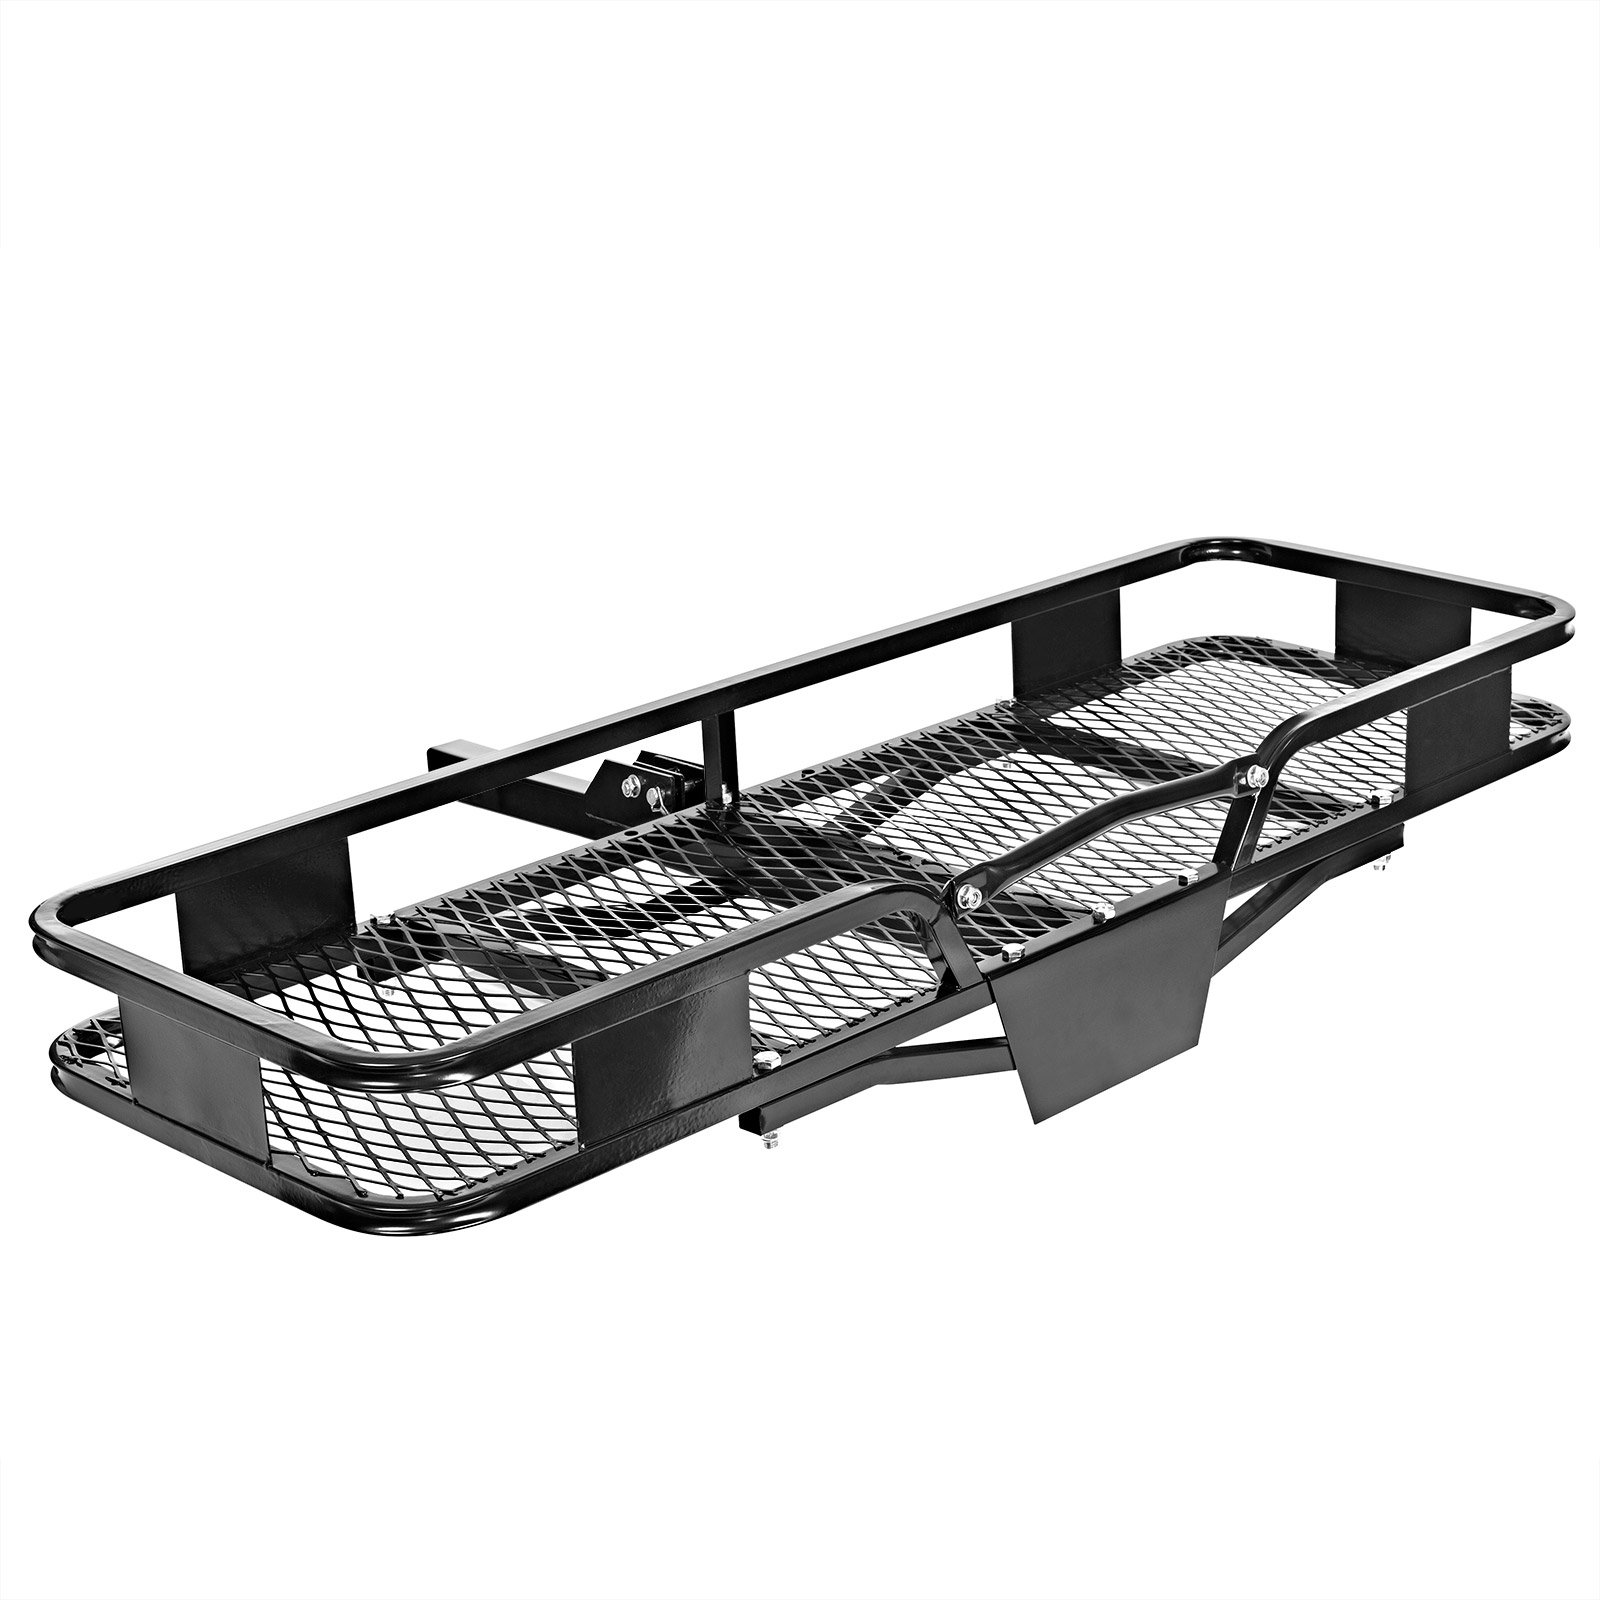 Direct Aftermarket Folding Hitch Rack Cargo Carrier 60 inch Hauler 2 inch Receiver by Direct Aftermarket